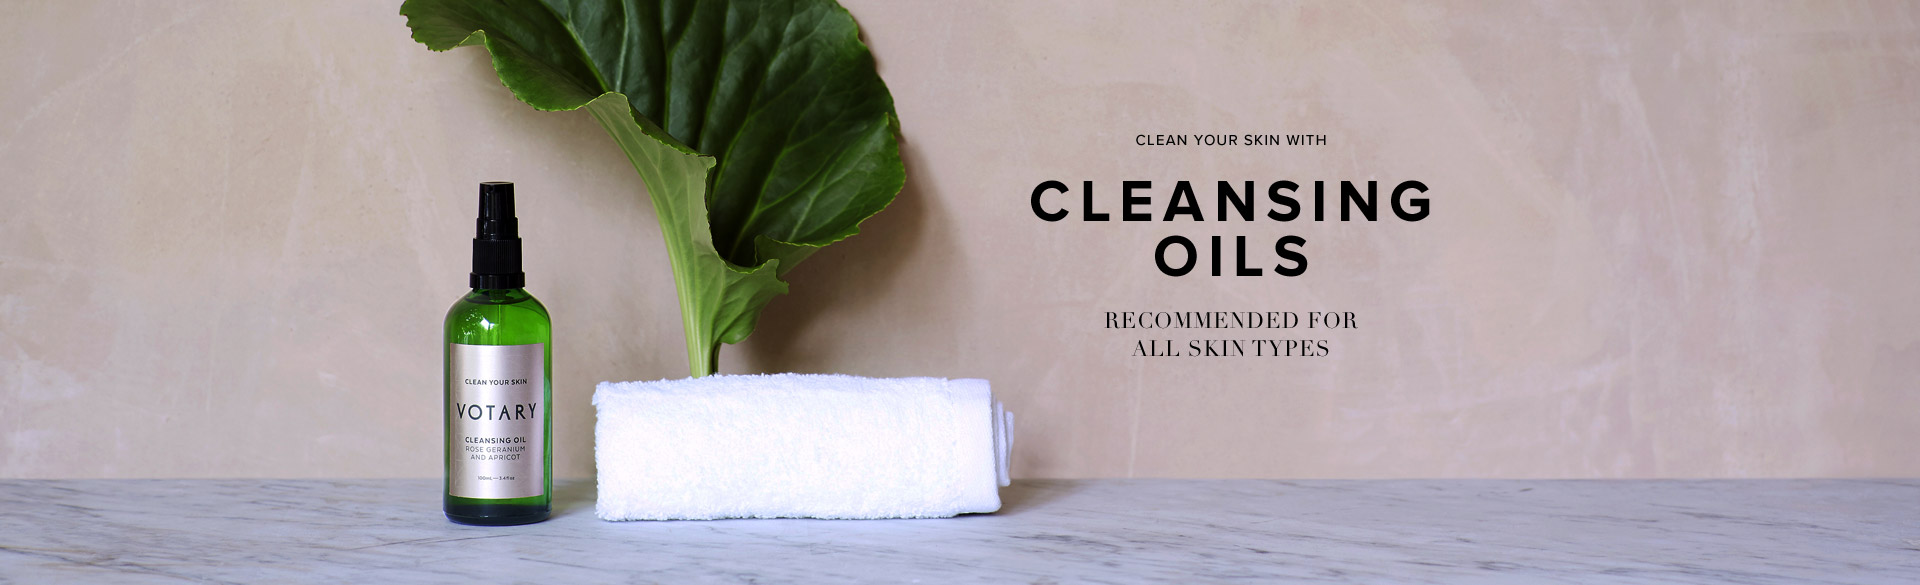 Clean Your Skin with Cleansing Oils - Recommended for All Skin Types